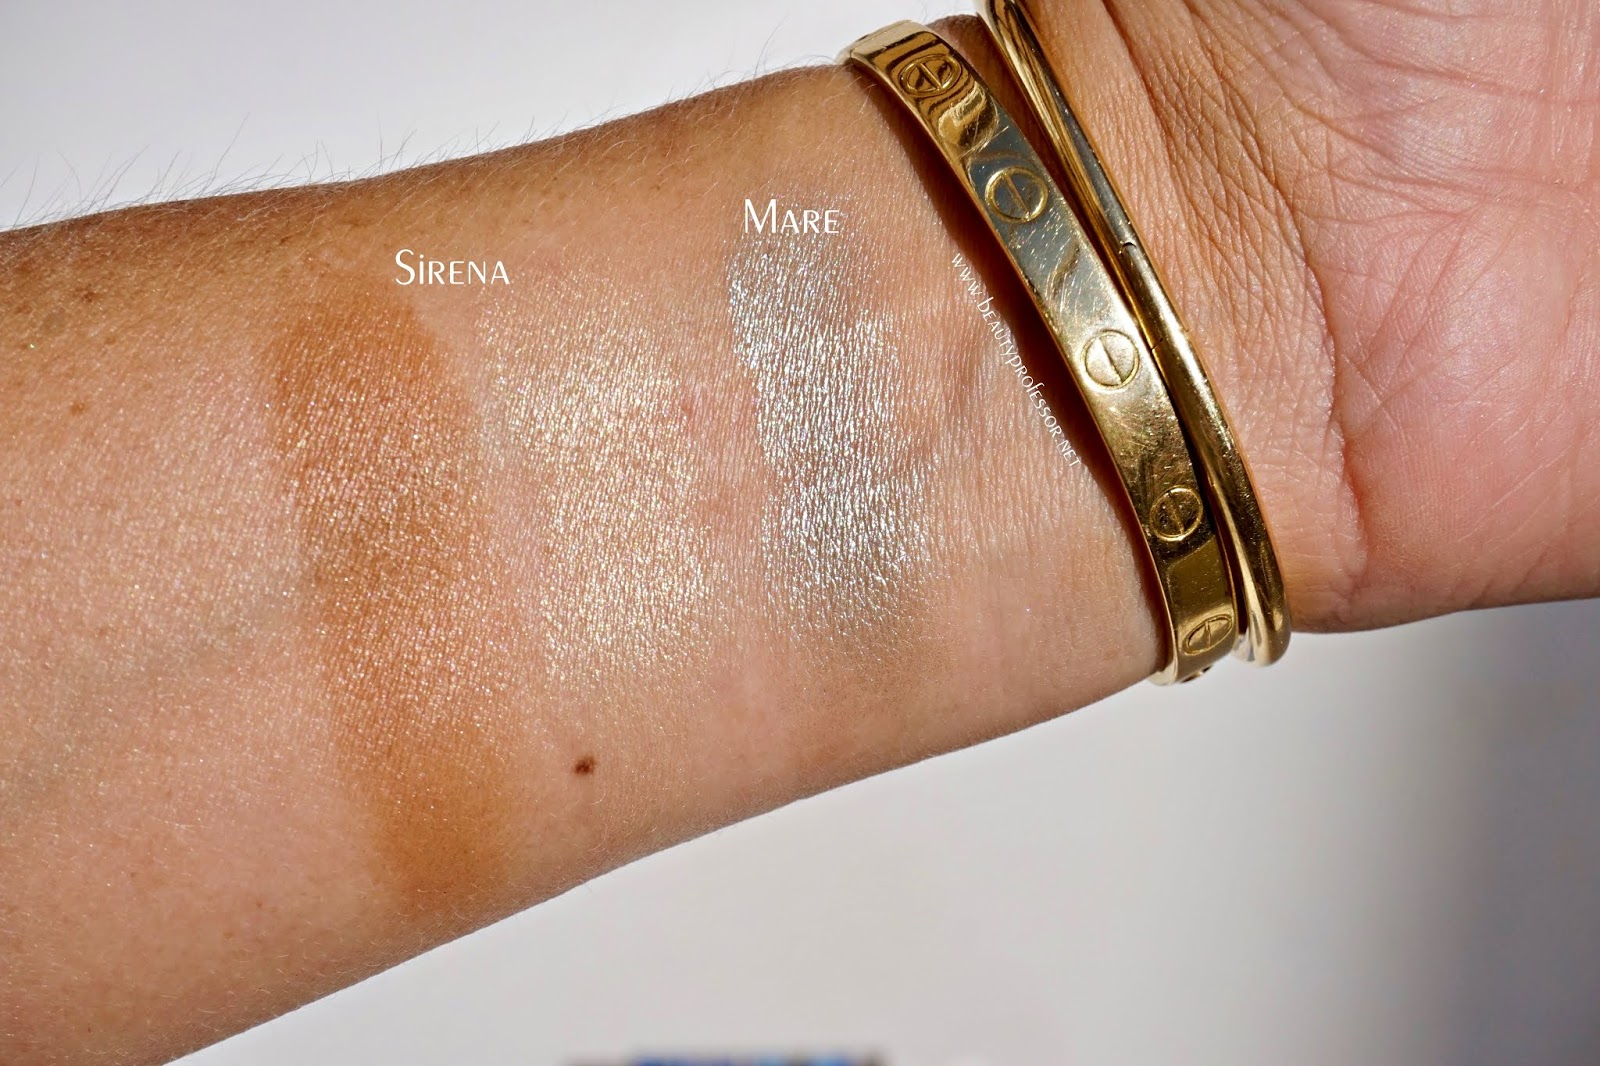 Chantecaille sirena bronzer swatches